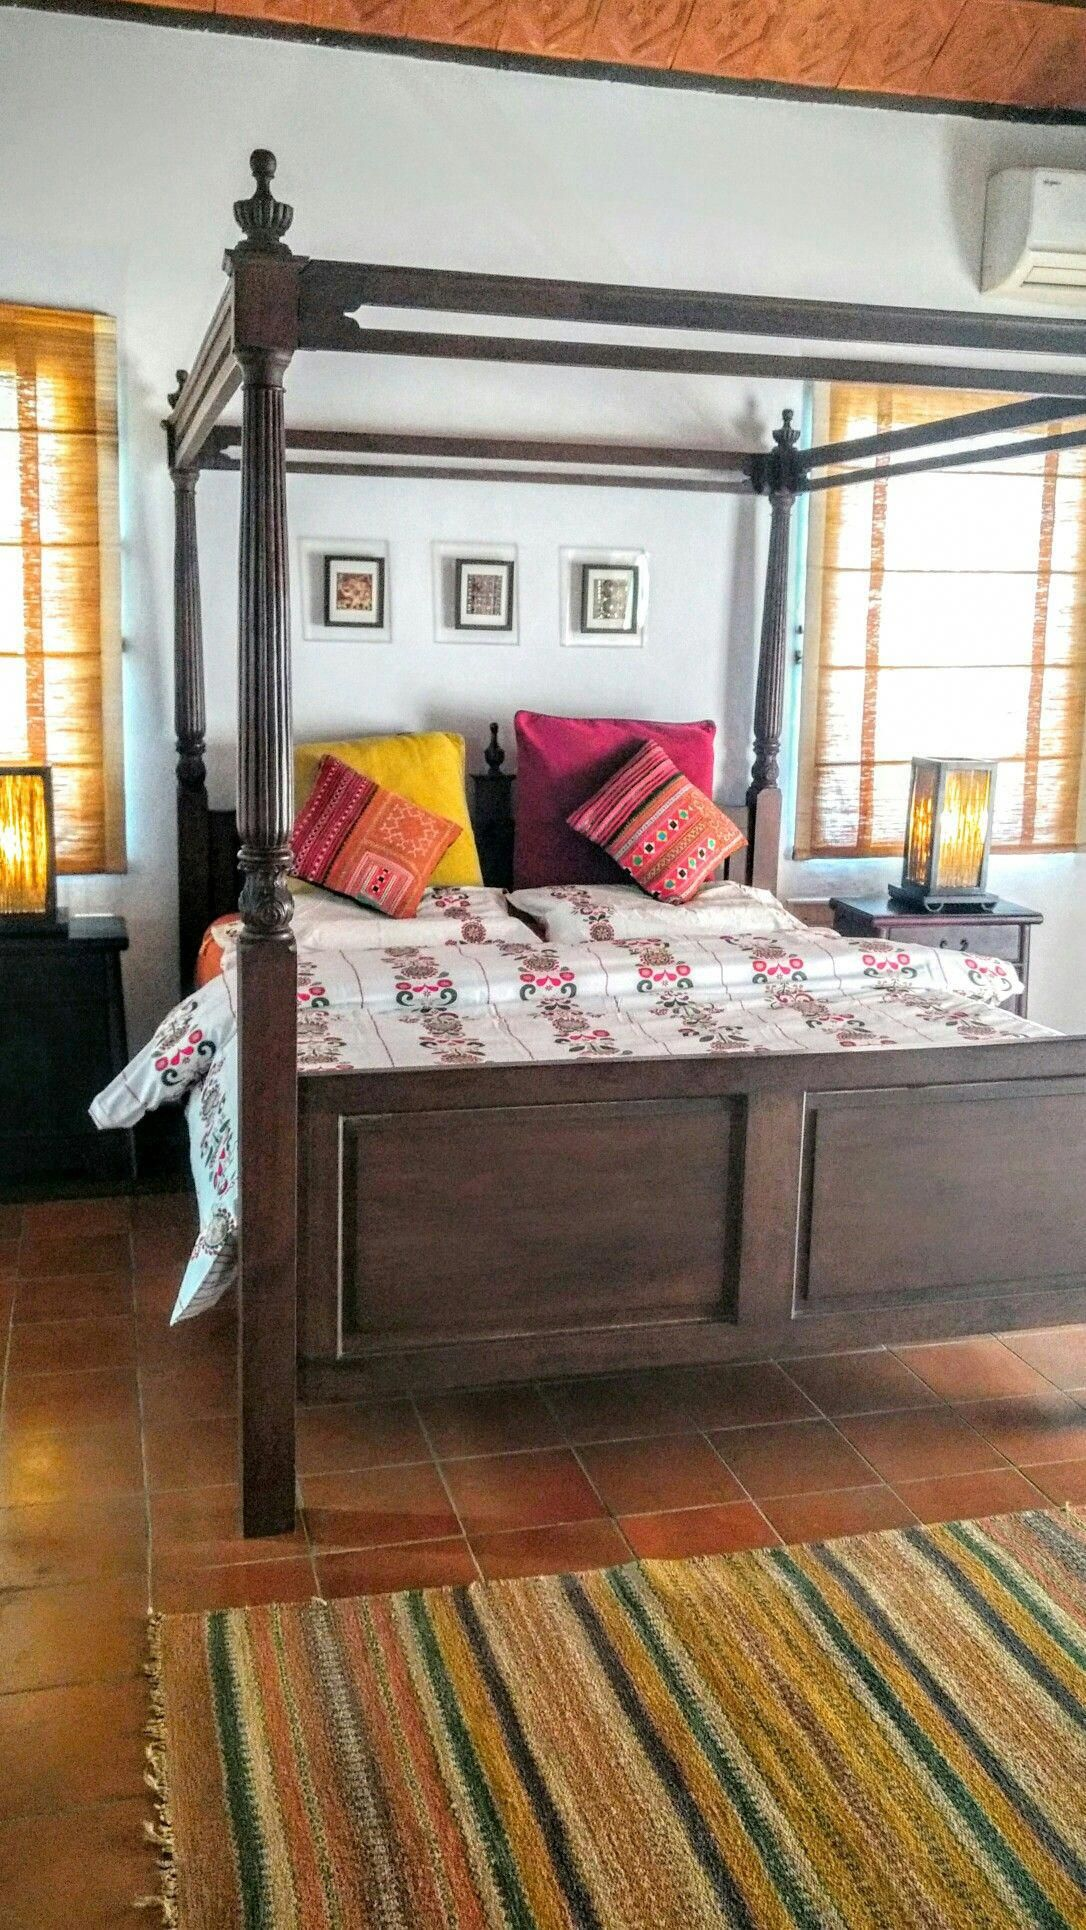 Want to know more about bedroom furniture arrangement